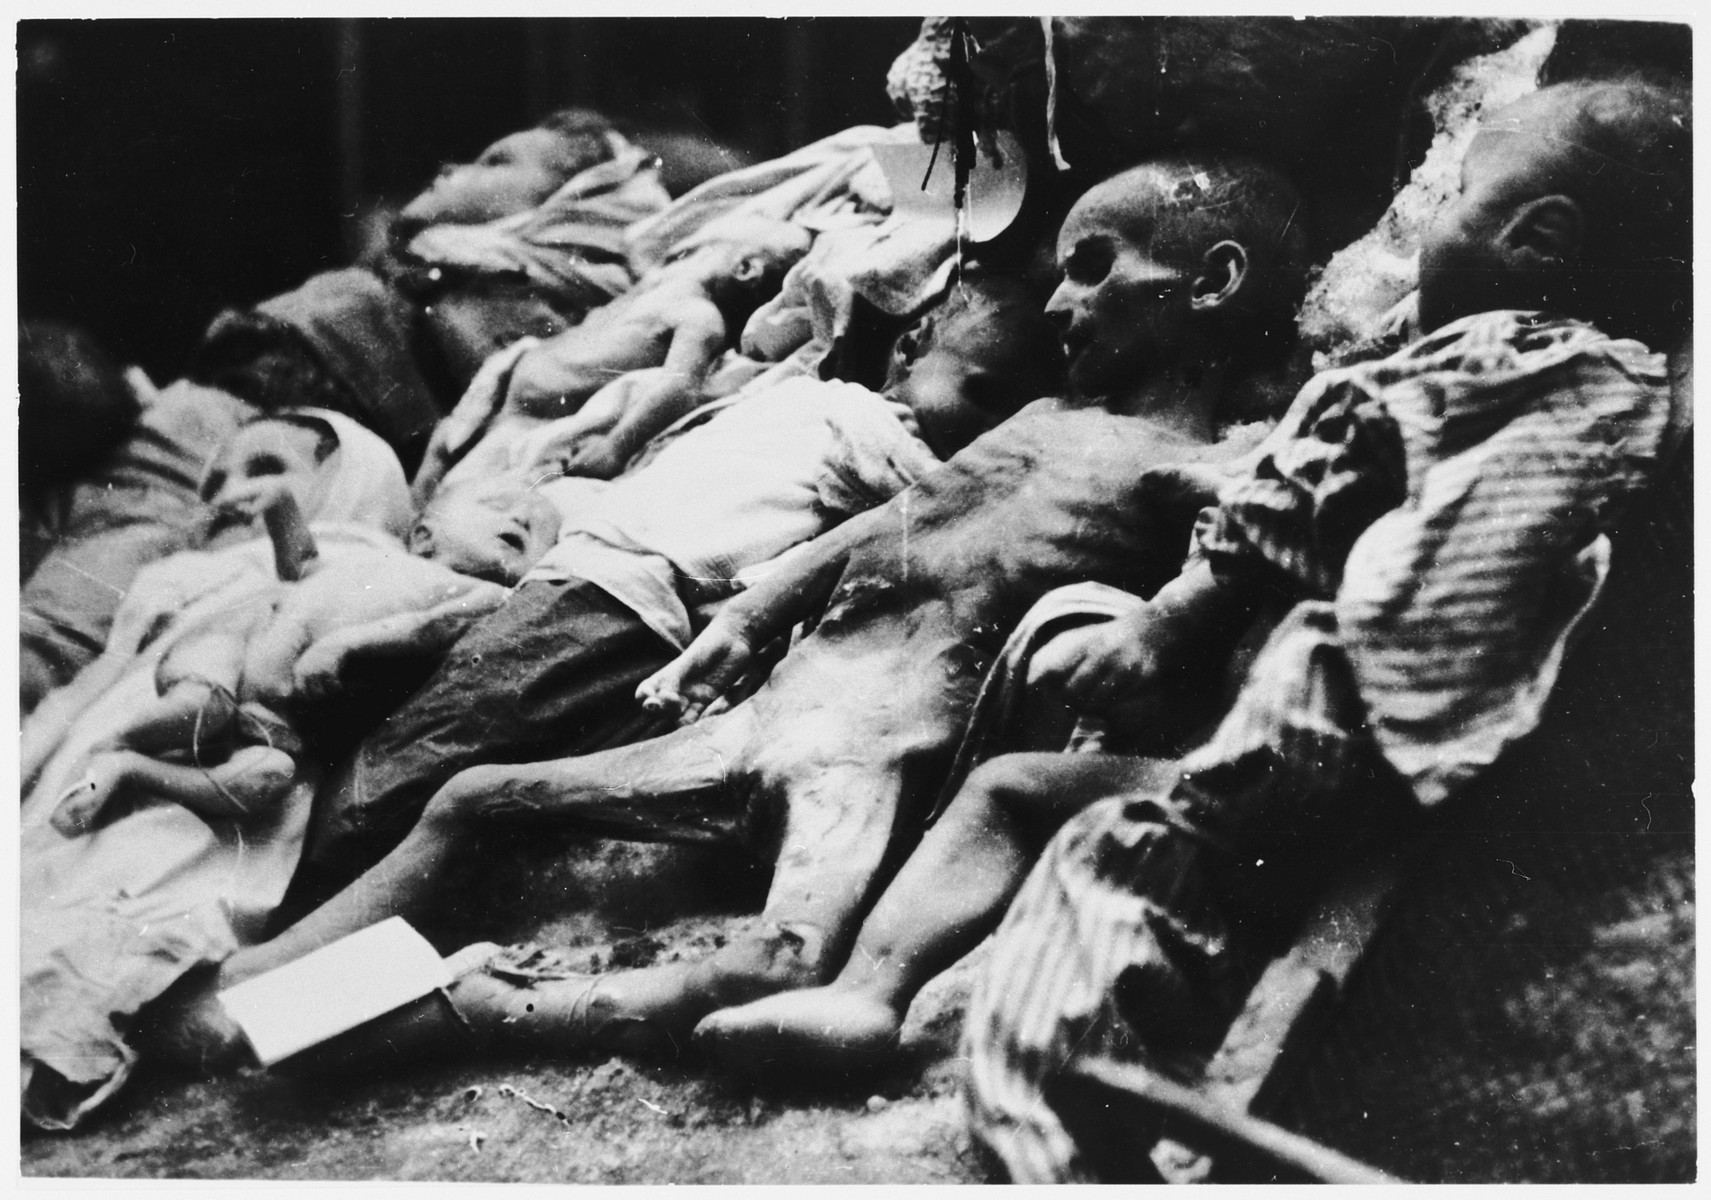 The bodies of emaciated children lying on the ground at an unidentified concentration camp for children in Croatia.